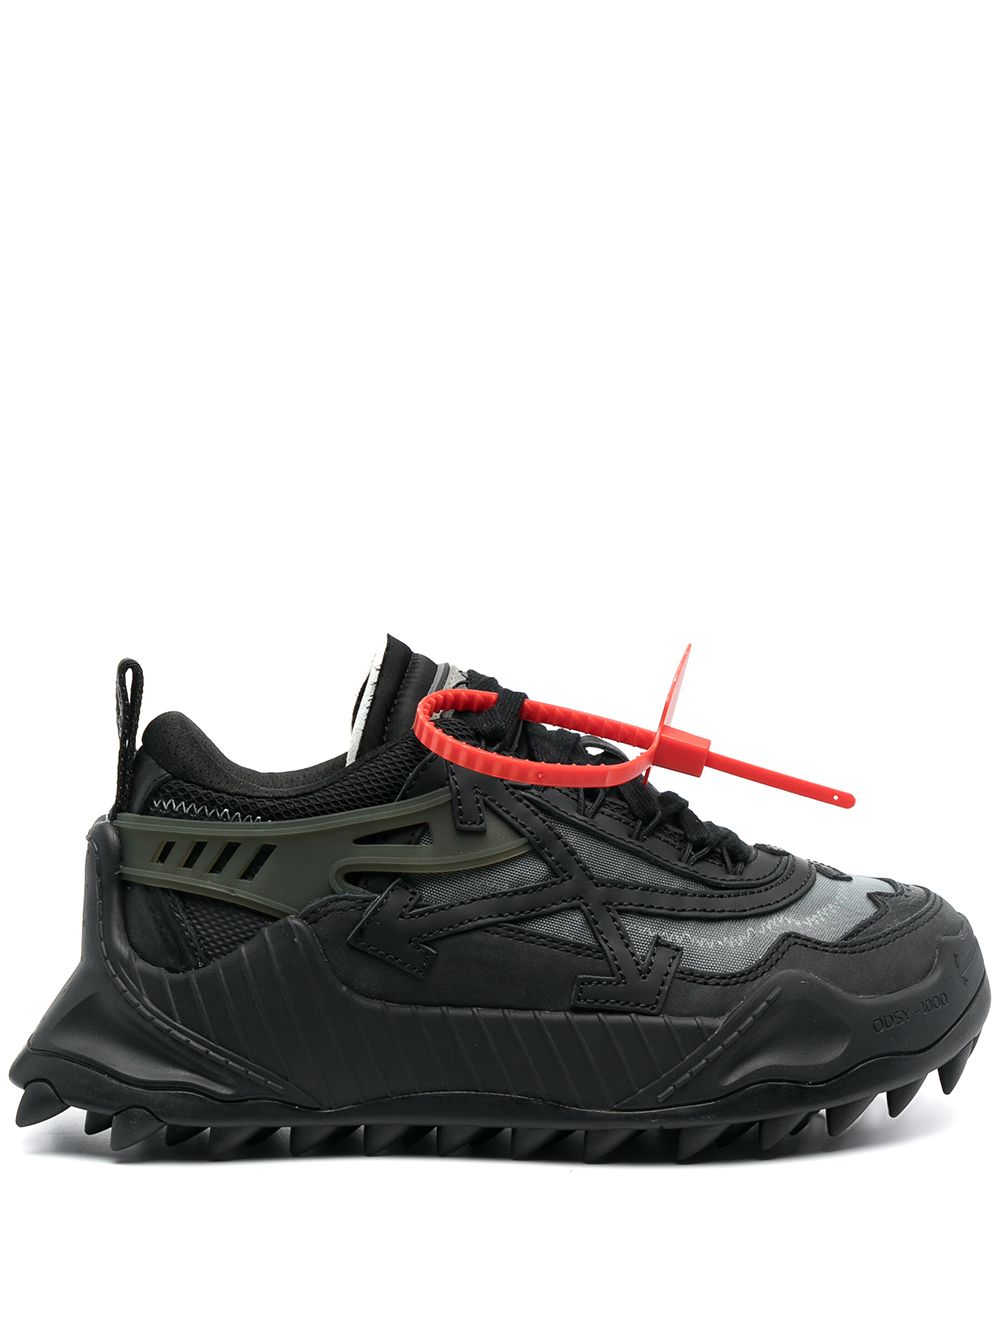 OFF-WHITE WOMEN Odsy-1000 Sneakers Black/Grey